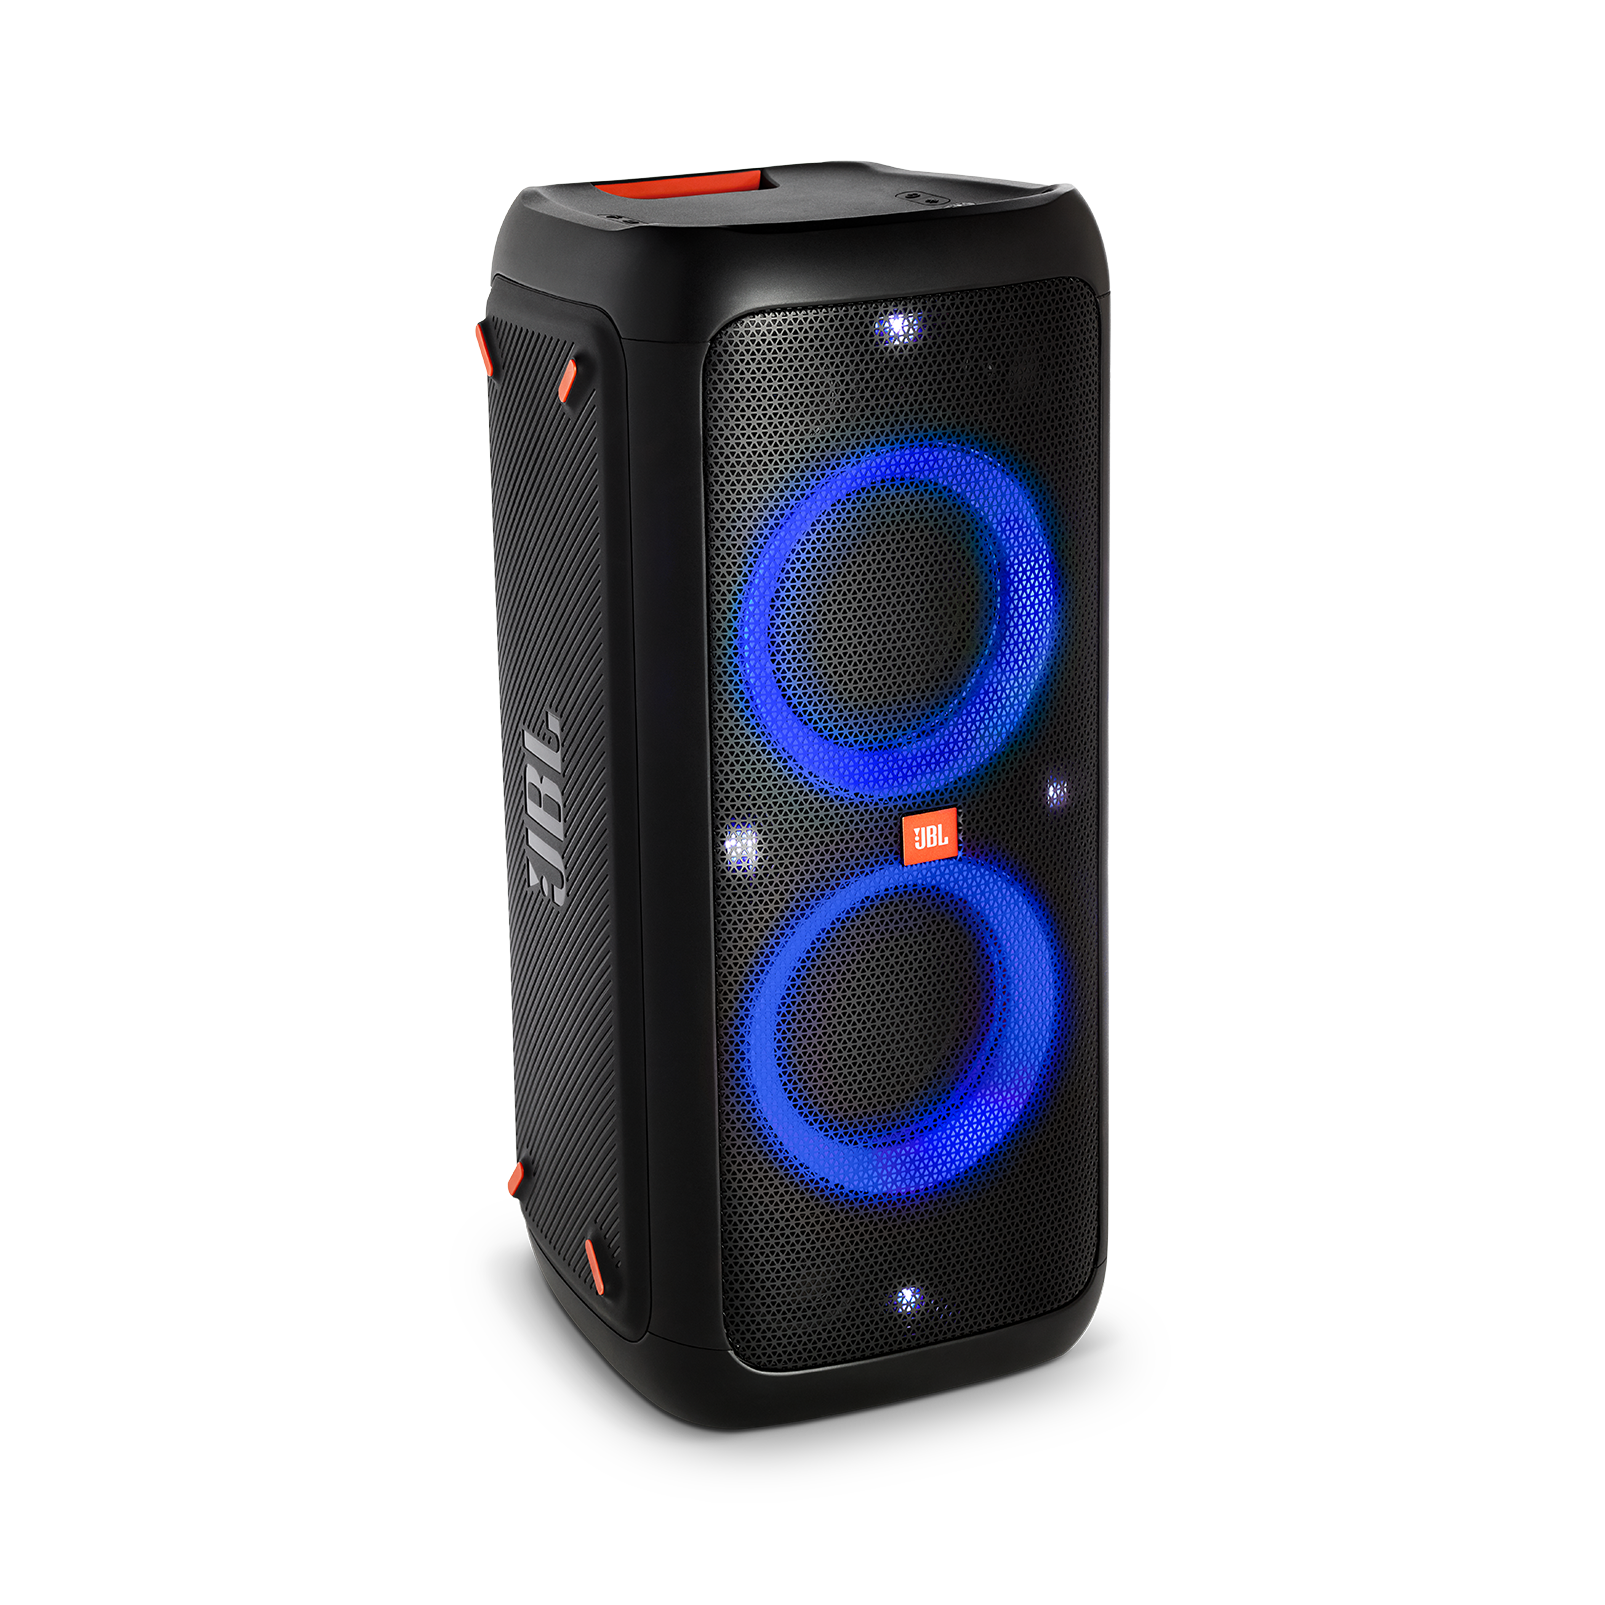 JBL PartyBox 200 Premium High Power Portable Wireless Bluetooth Audio System - Black